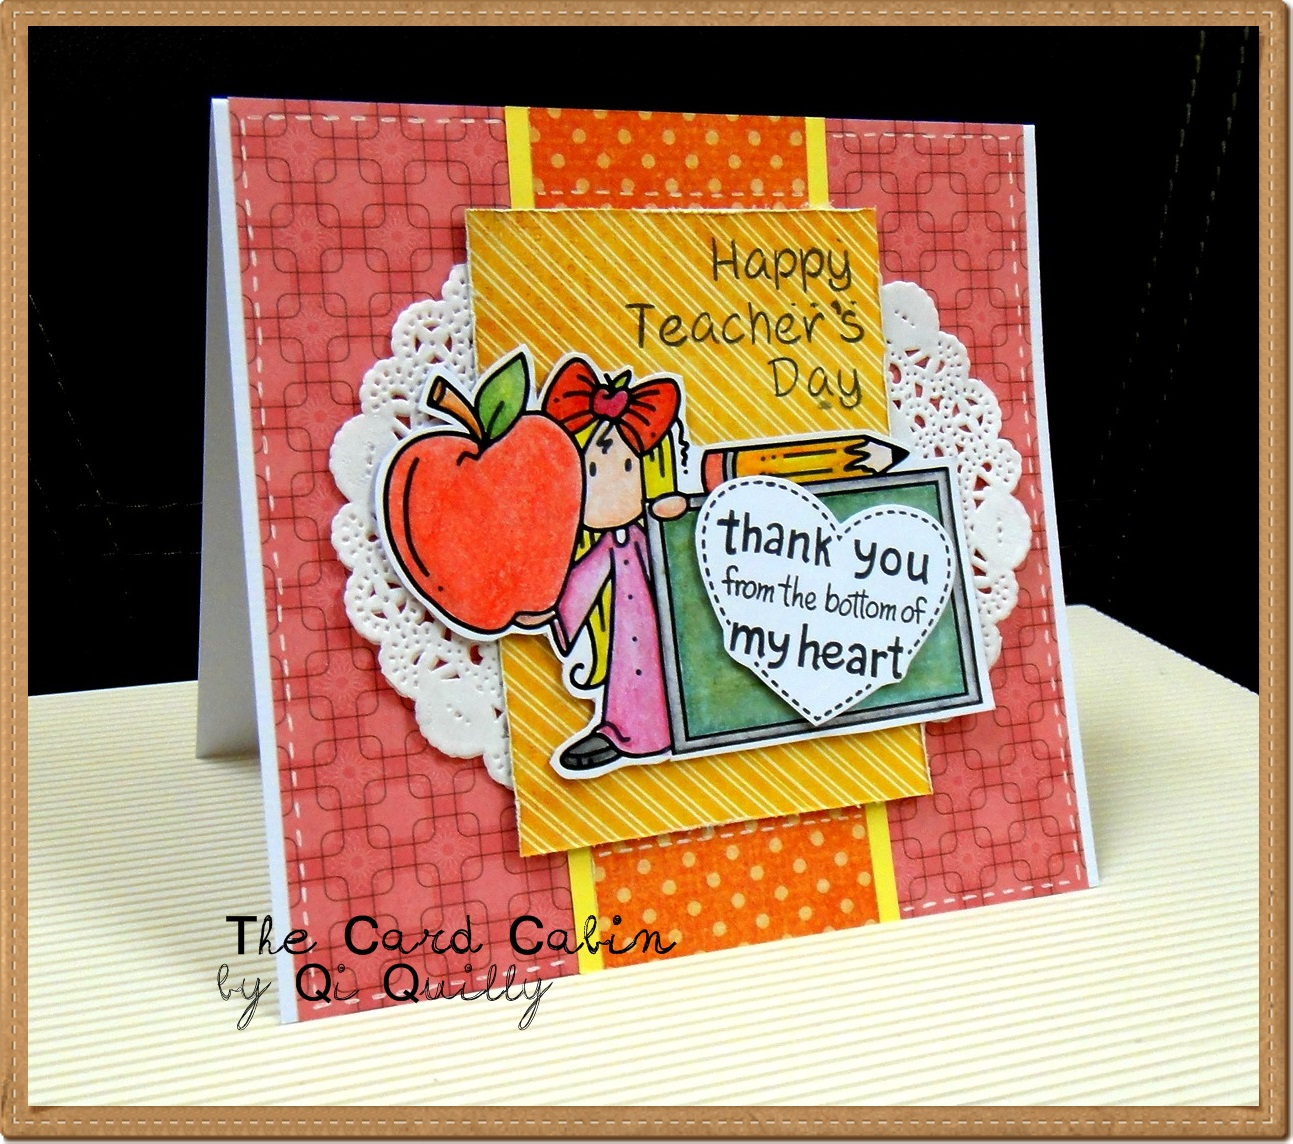 Teachers Day Cards - Greeting Cards 2016 Collection [Latest]